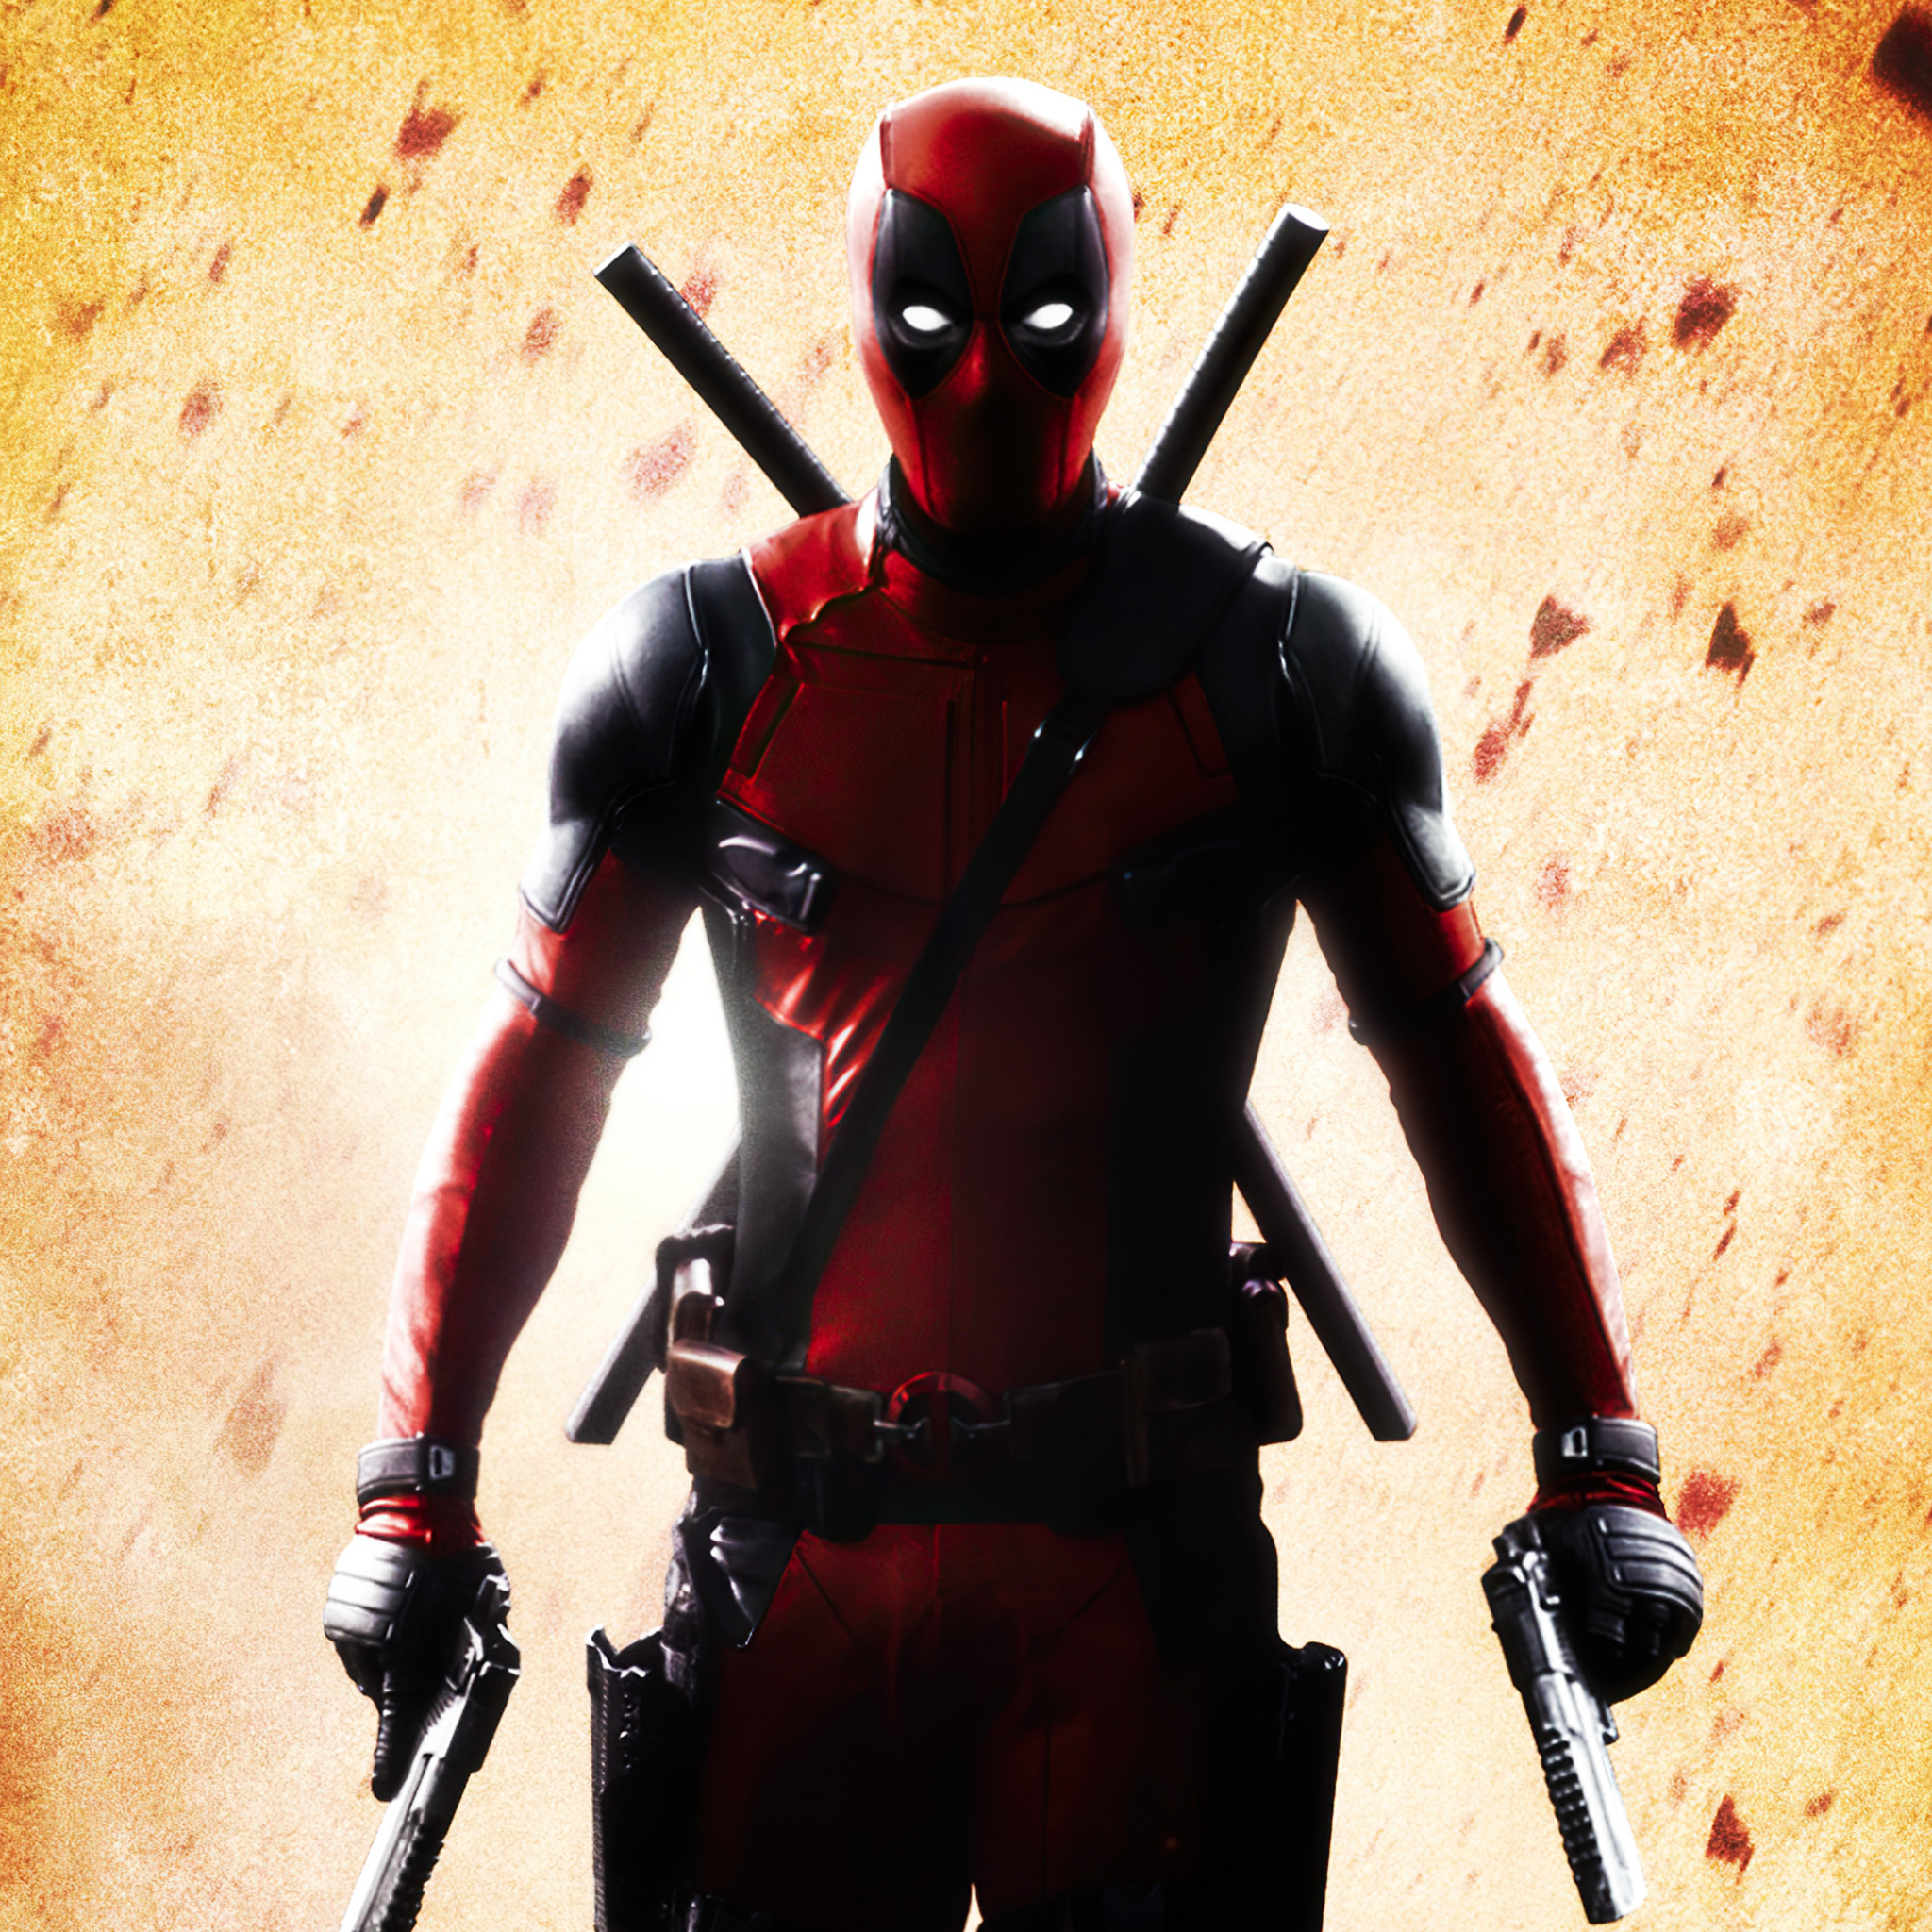 2048x2048 Deadpool Superhero 4k Ipad Air HD 4k Wallpapers ...